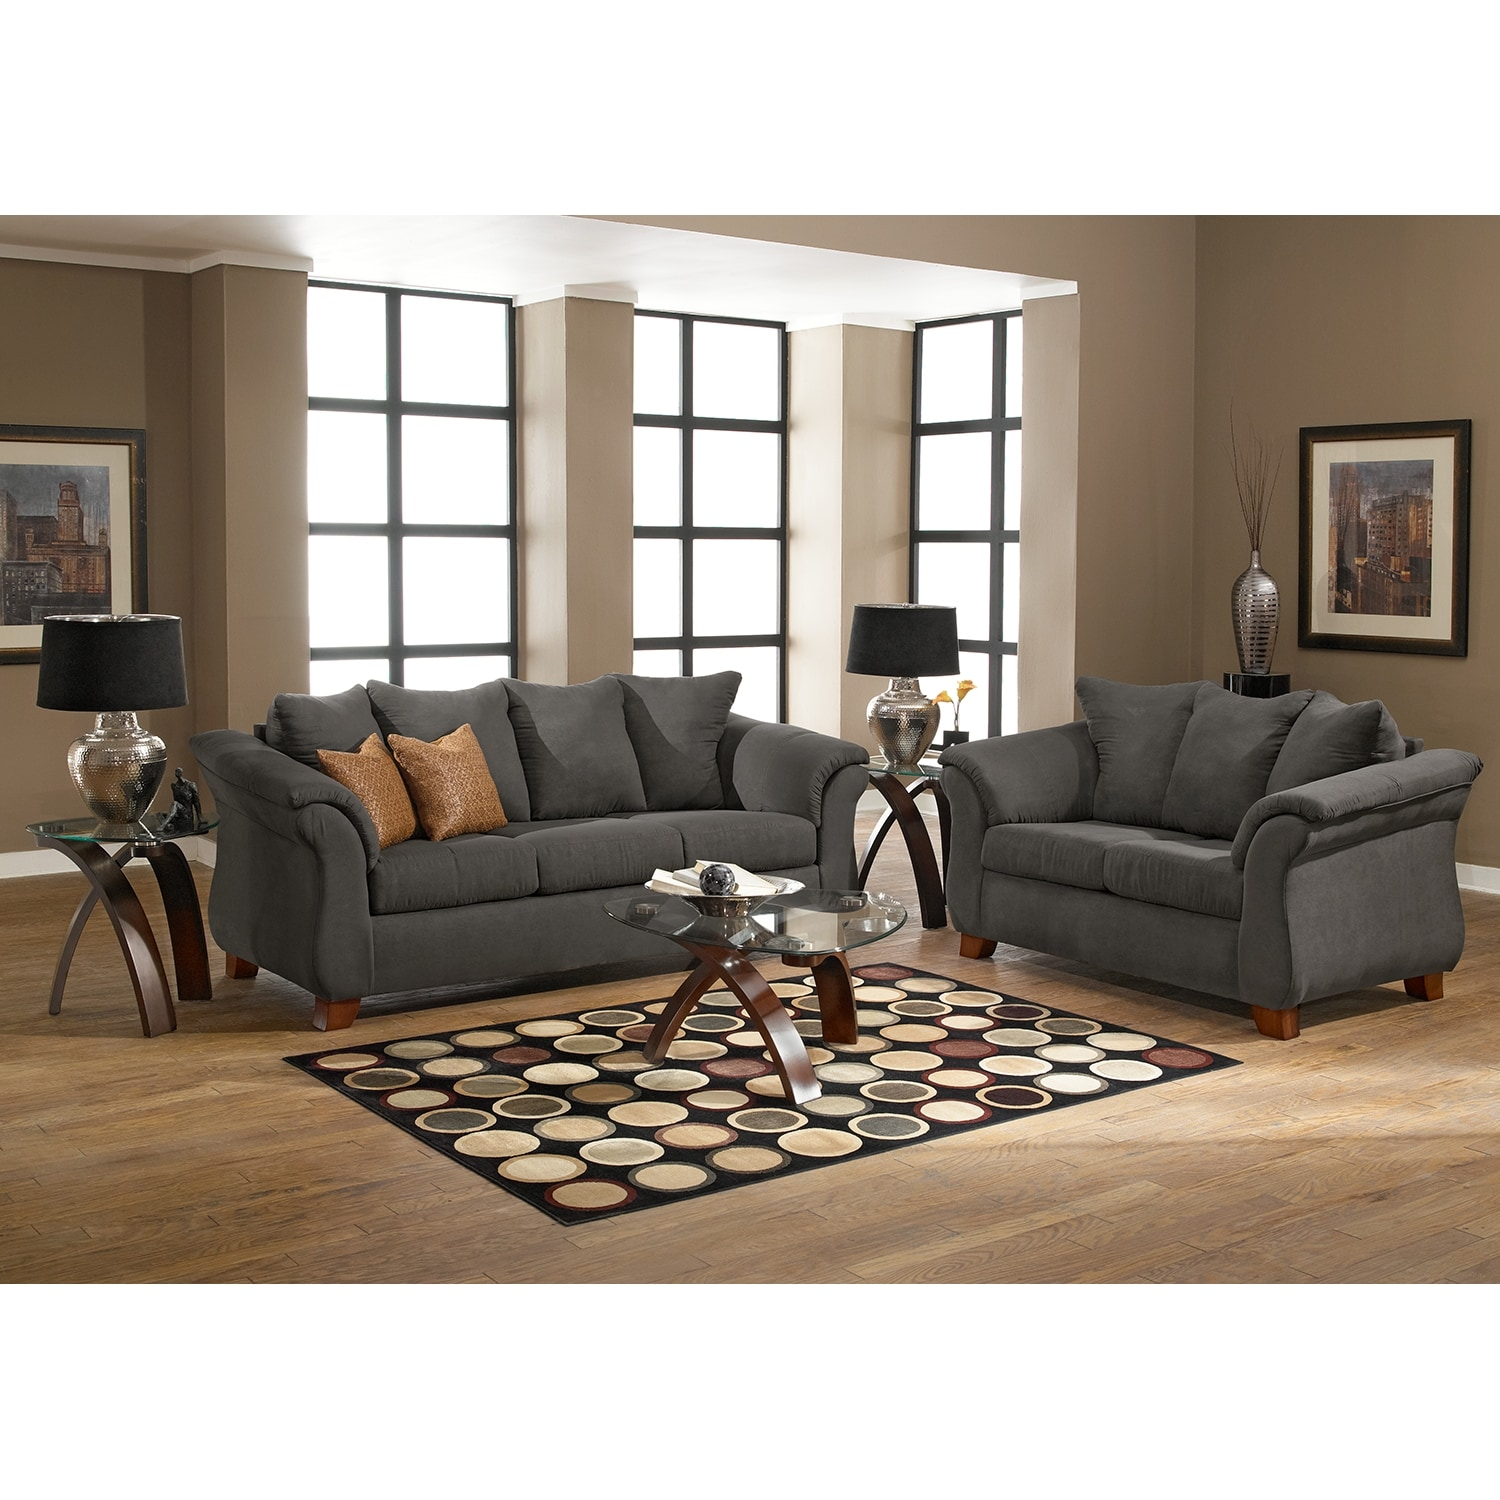 Adrian Loveseat Graphite